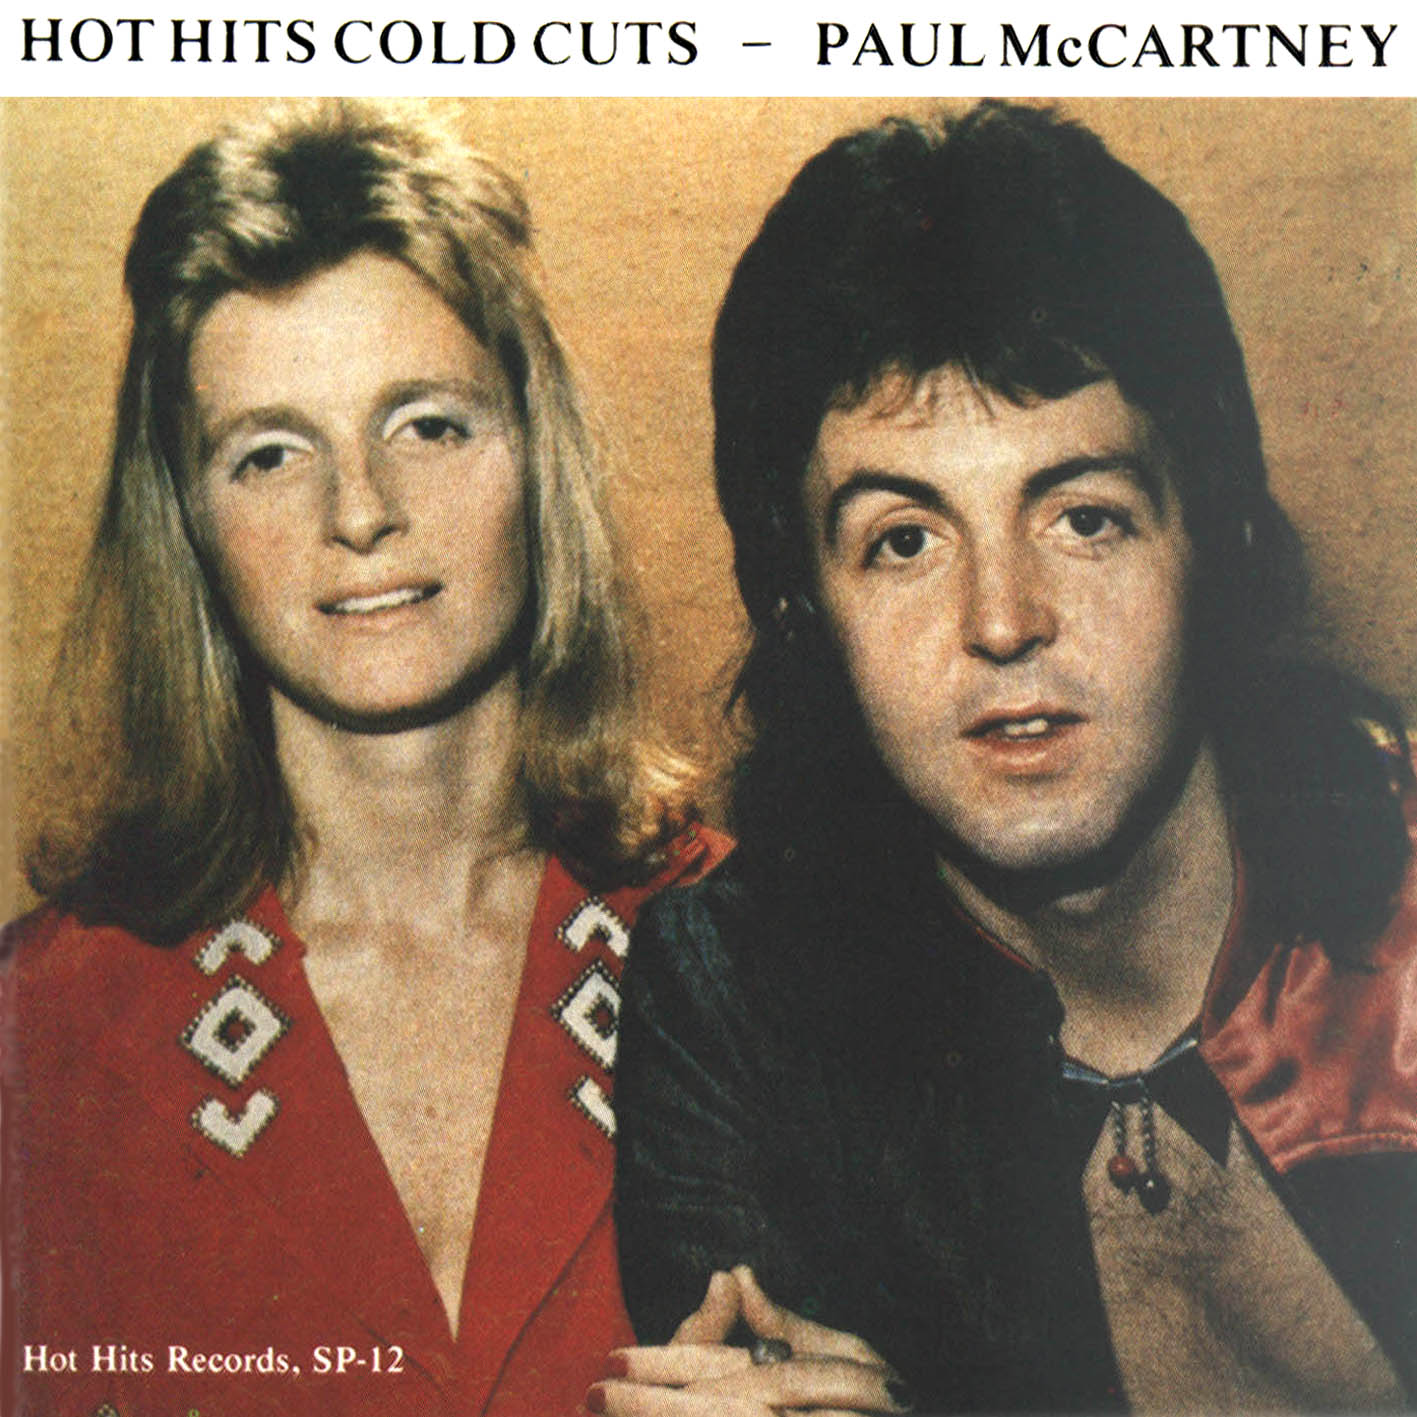 http://1.bp.blogspot.com/_gPMcfaLPNhA/THFvUztmZyI/AAAAAAAALPM/rWAYkEB5xtU/s1600/Paul+McCartney+Hot+Hits+%26+Cold+Cuts+Front+Cover.jpg